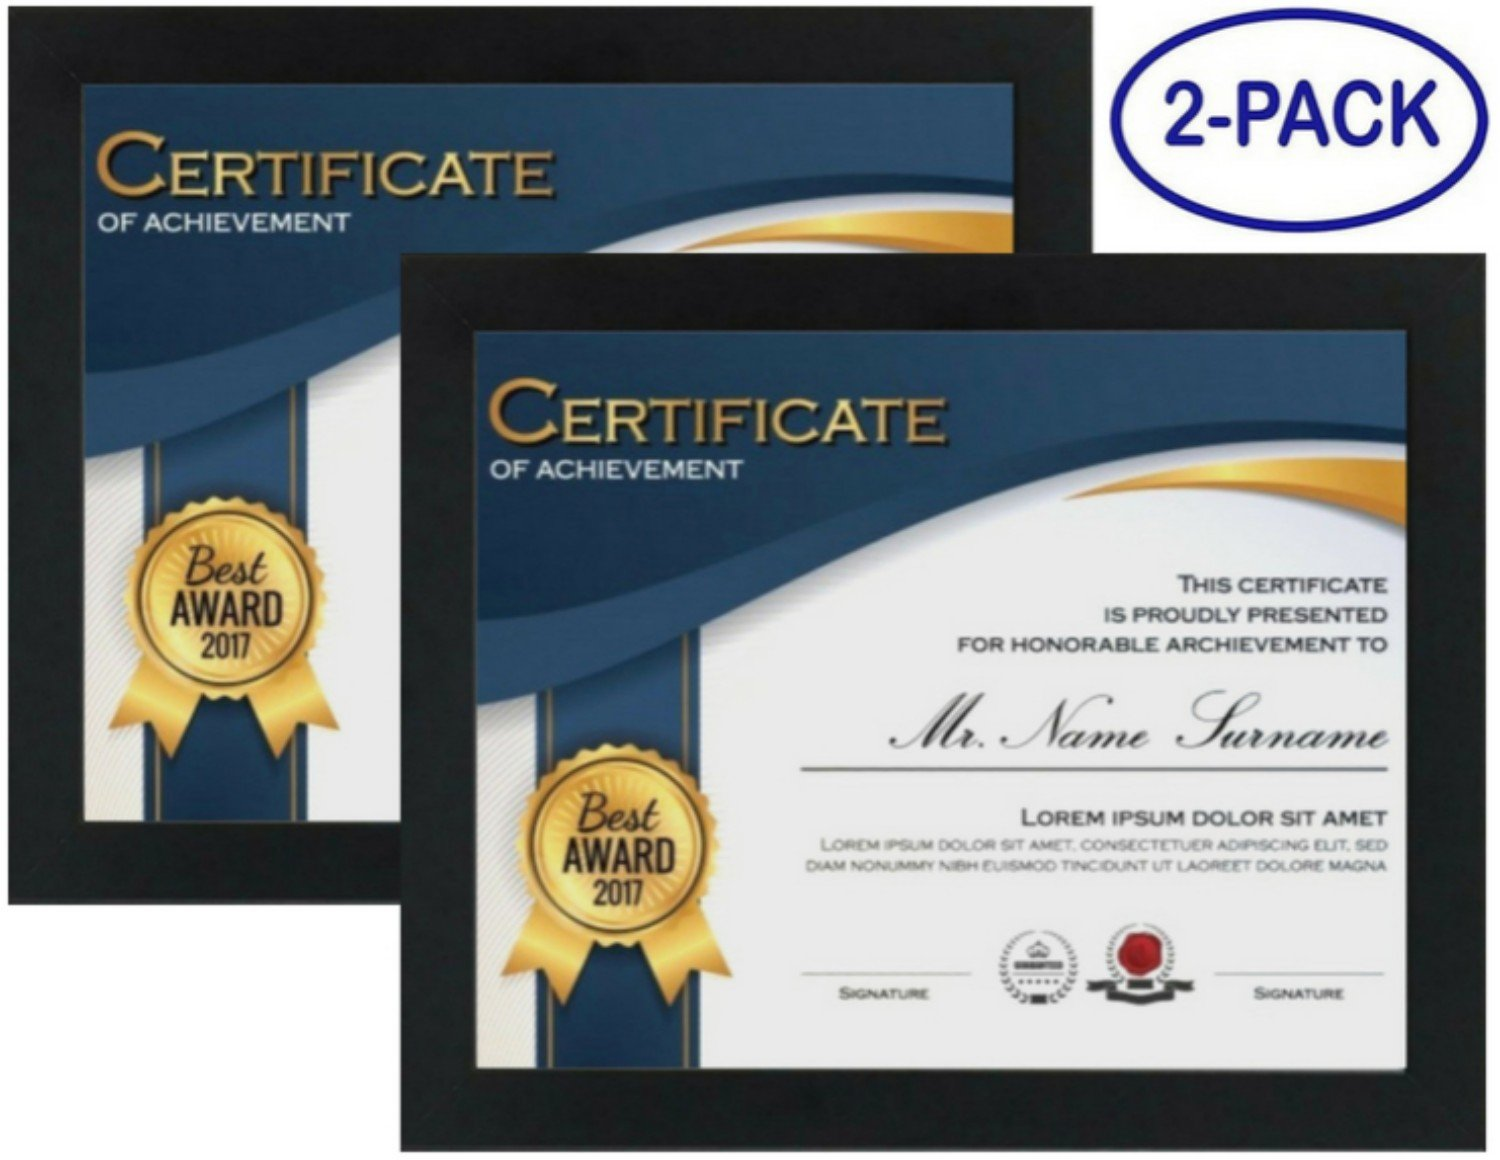 Certificate Frames (2-Pack) - Made to Display Documents 8.5x11 Inch - Wood - REAL GLASS FRONT - Hang Vertically or Horizontally - Certificate Frames 8.5 x 11 Multi-Pack Degree Award Standard Paper Tasse Verre